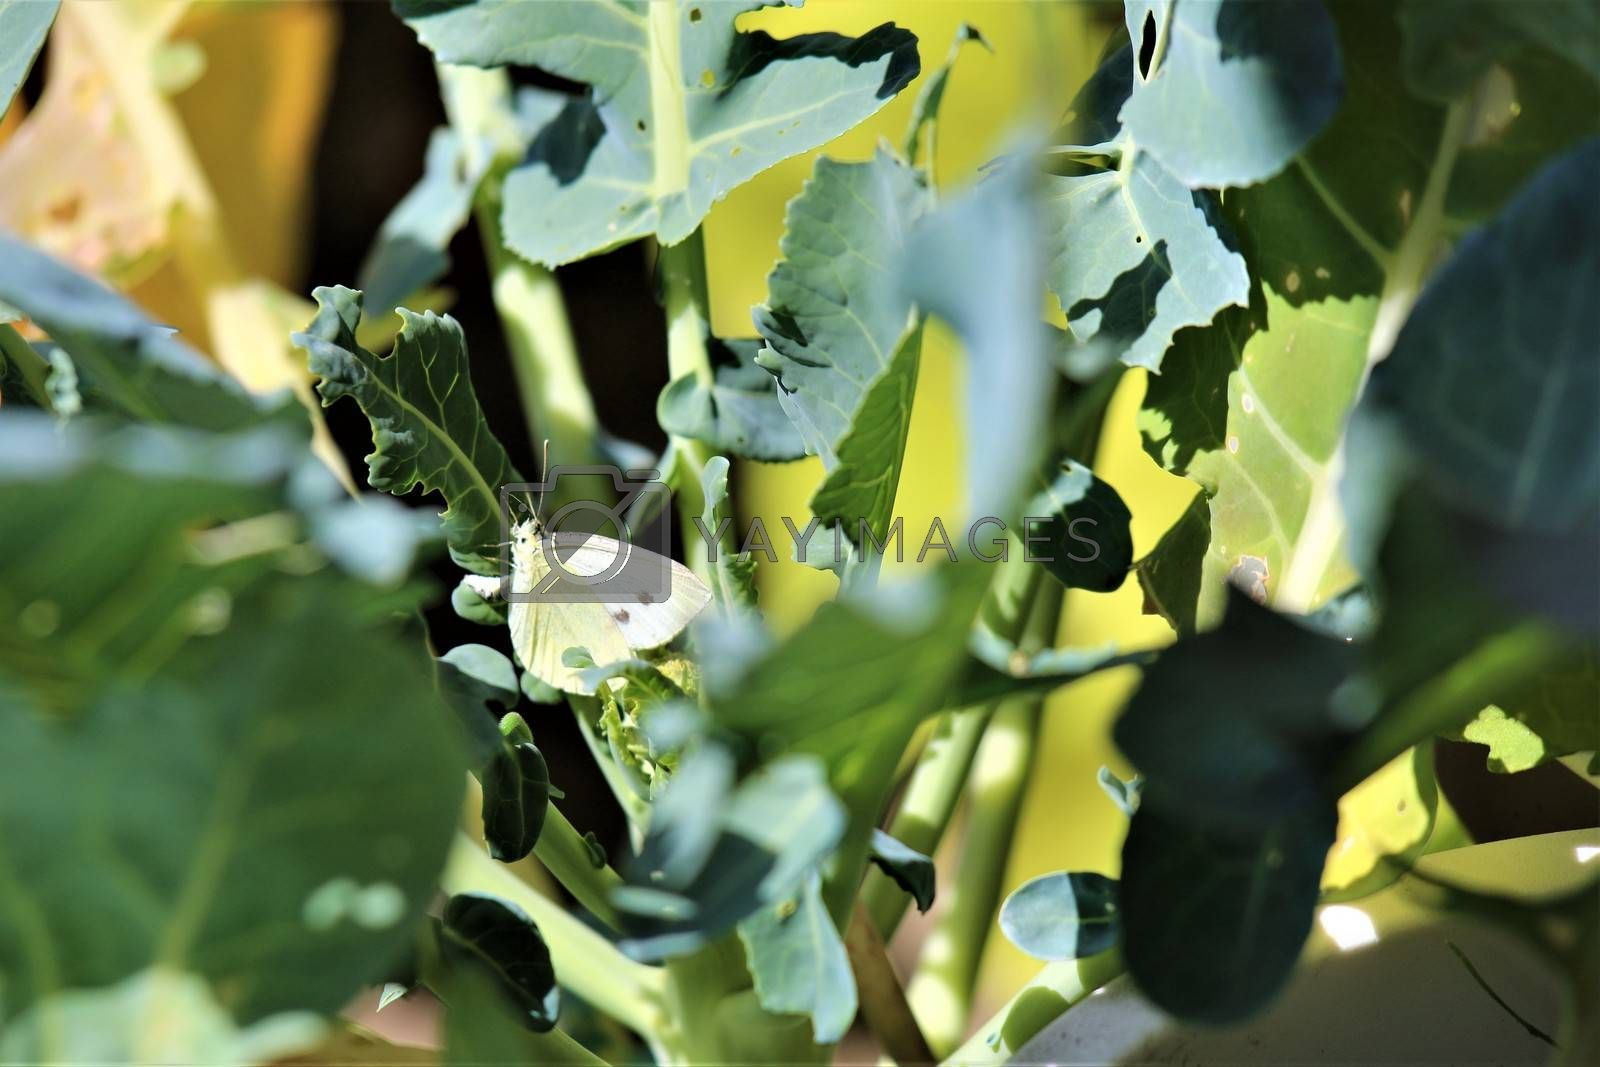 One cabbage white butterfly on a cabbage leaf